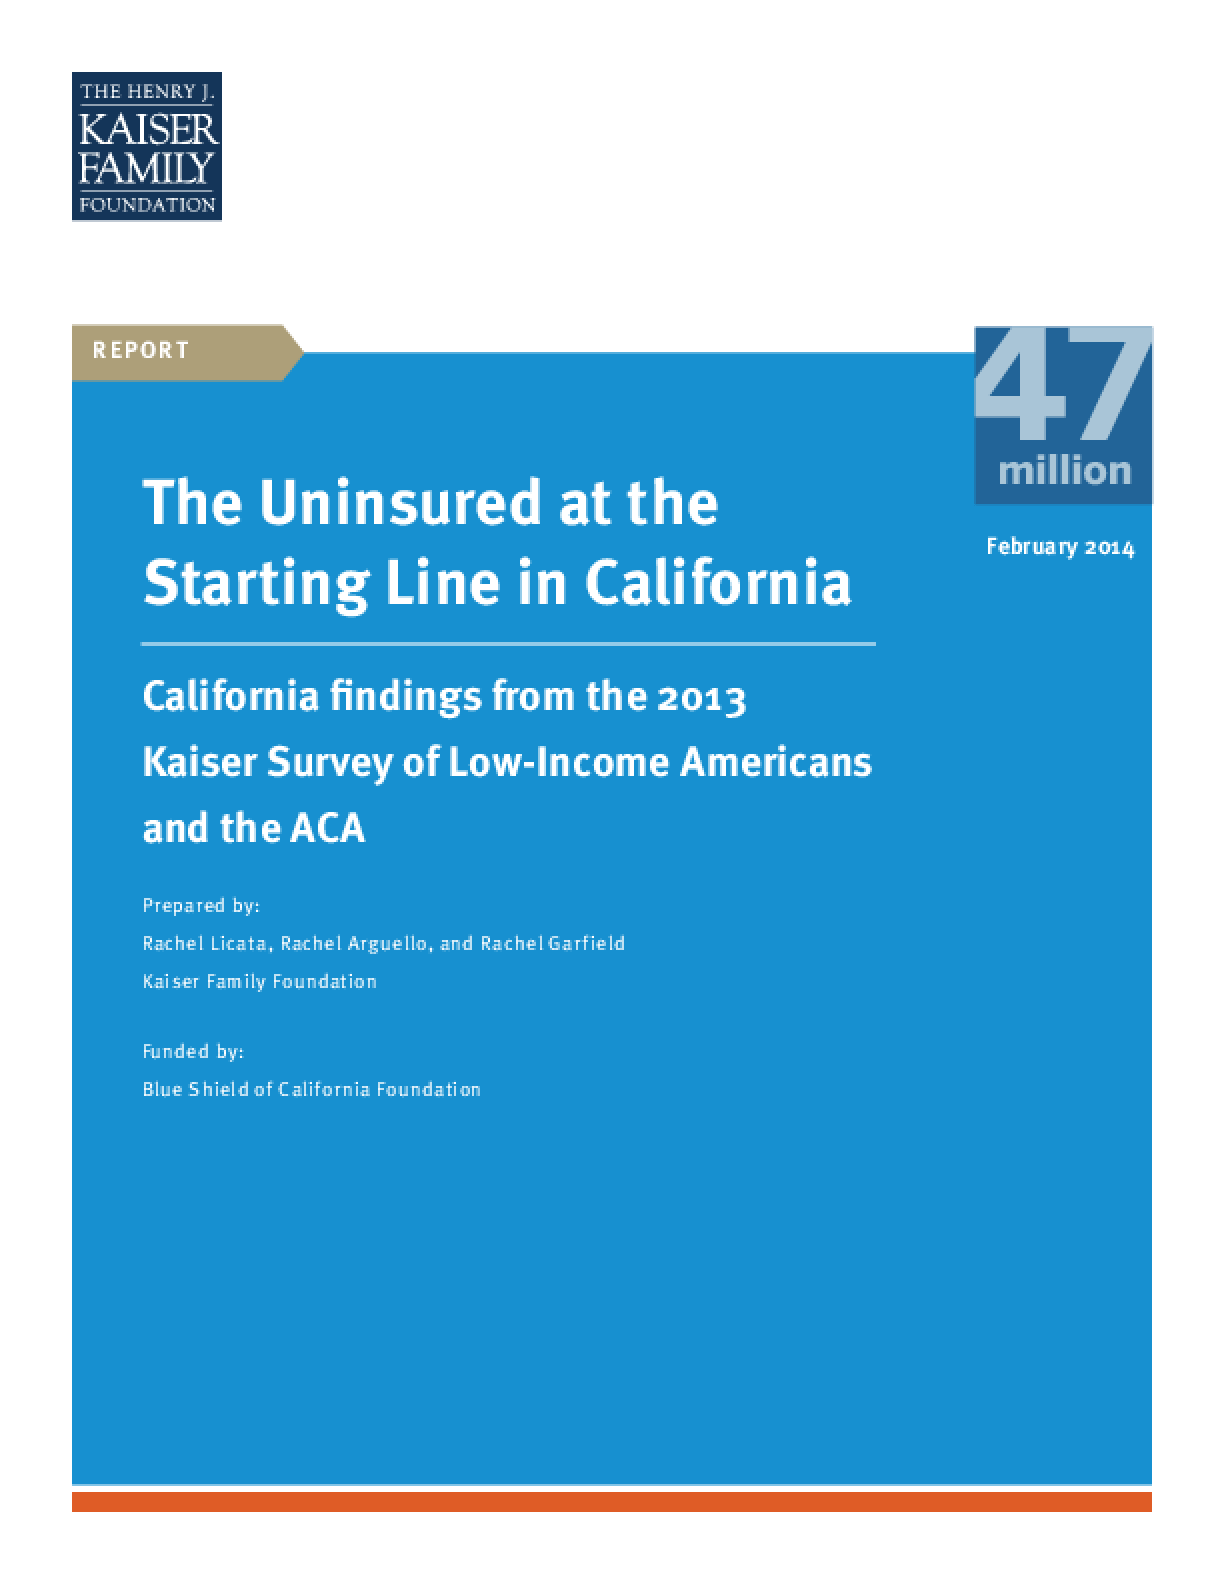 The Uninsured at the Starting Line in California: California findings from the 2013 Kaiser Survey of Low-Income Americans and the ACA